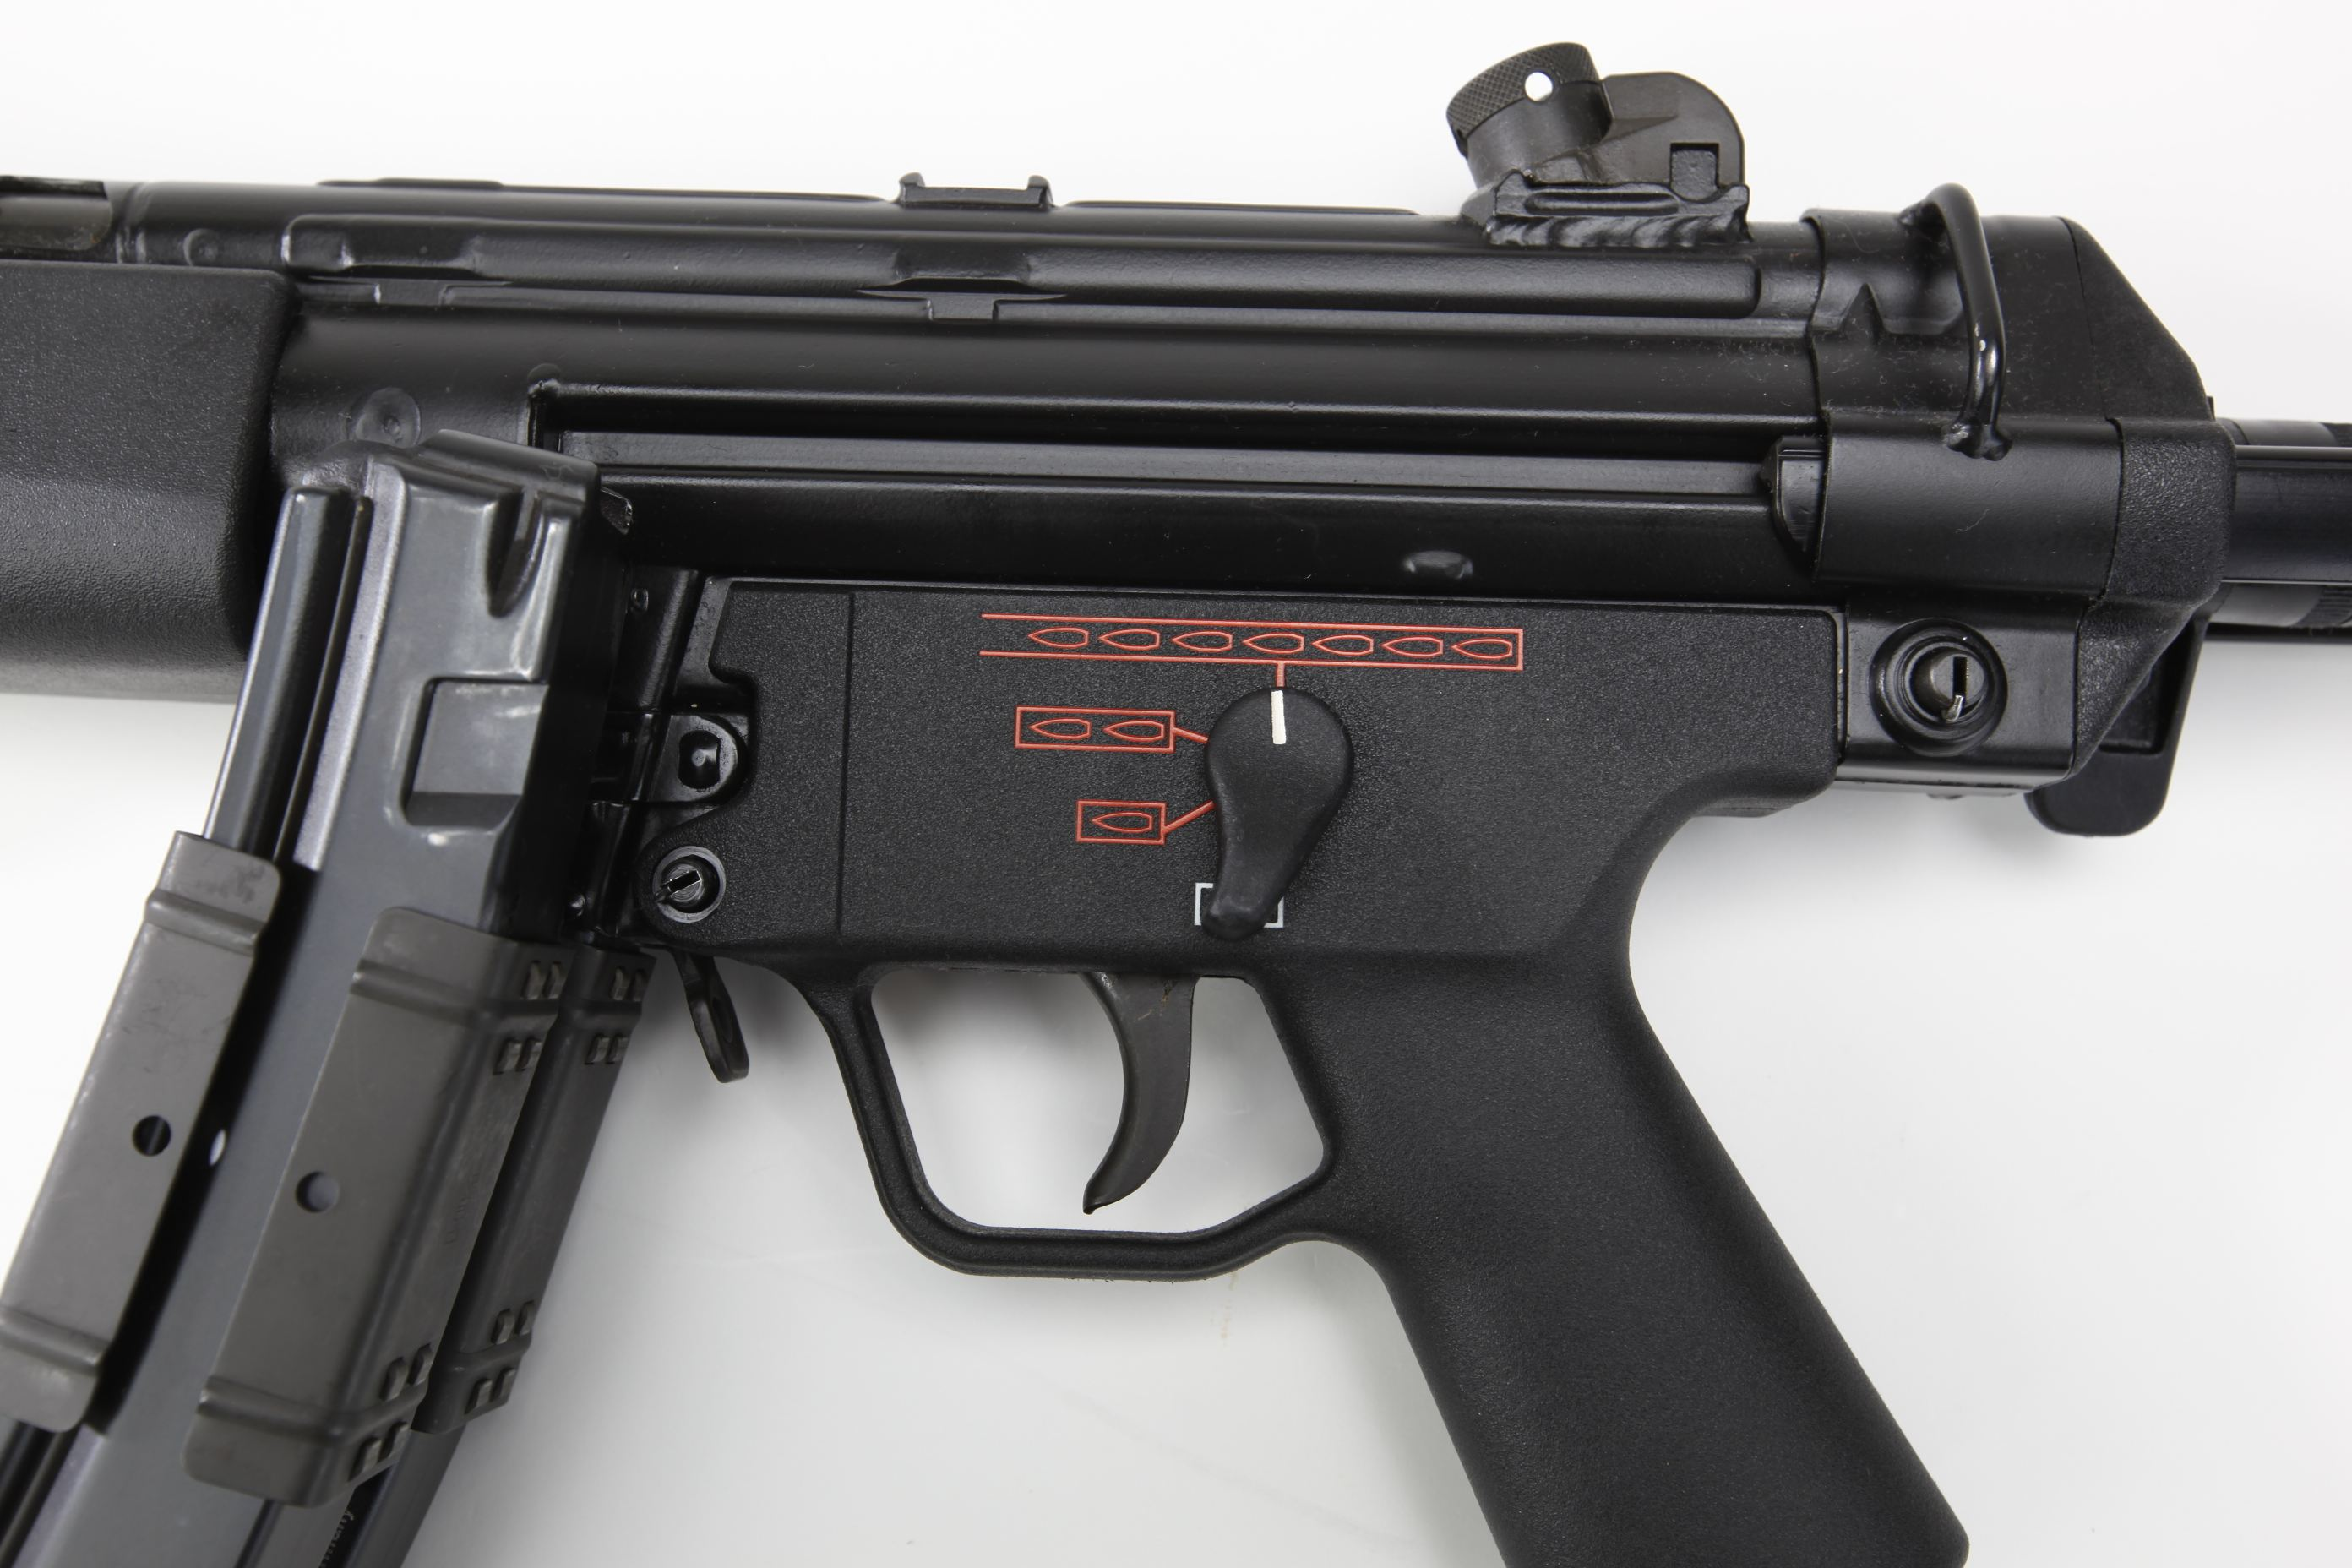 Heckler and Koch MP5A3 Submachine Gun